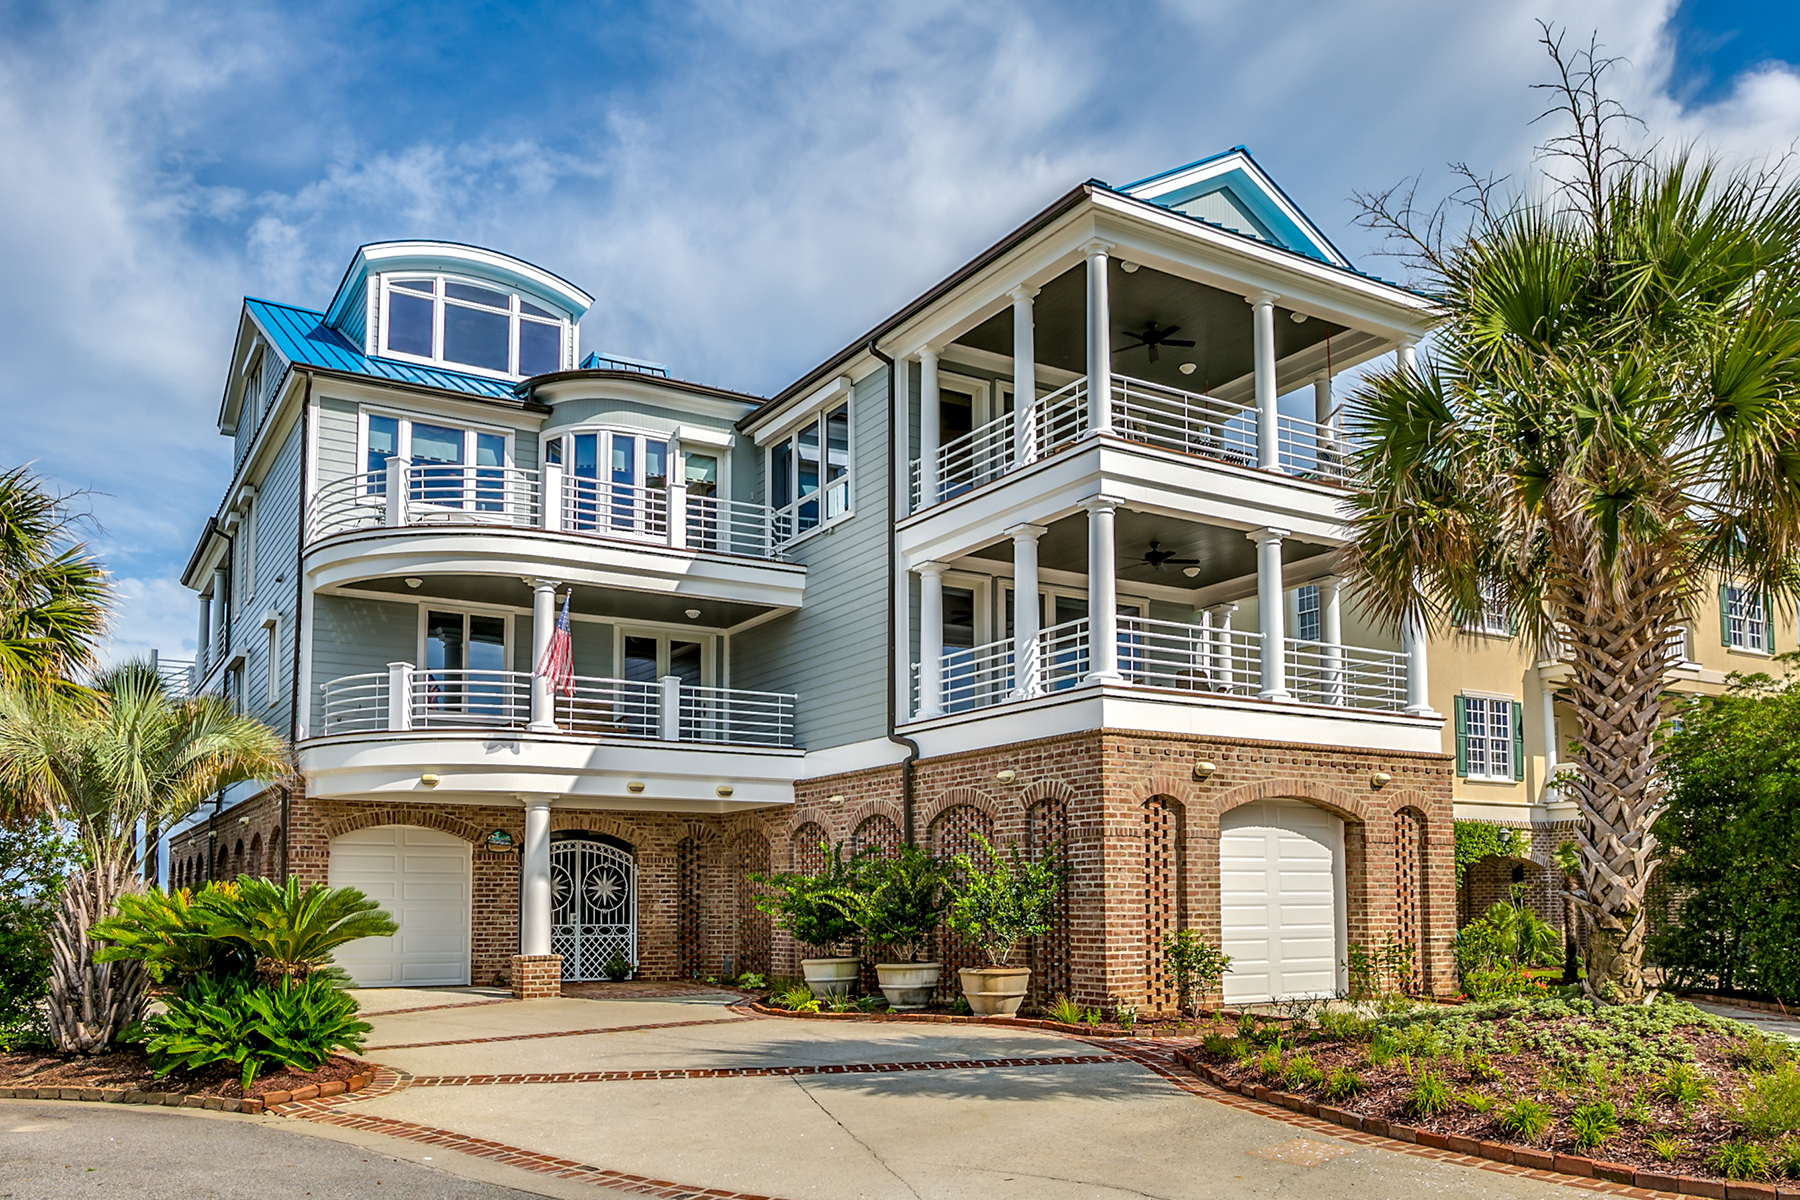 Single Family Homes for Active at 1101 Norris Drive Pawleys Island, South Carolina 29585 United States